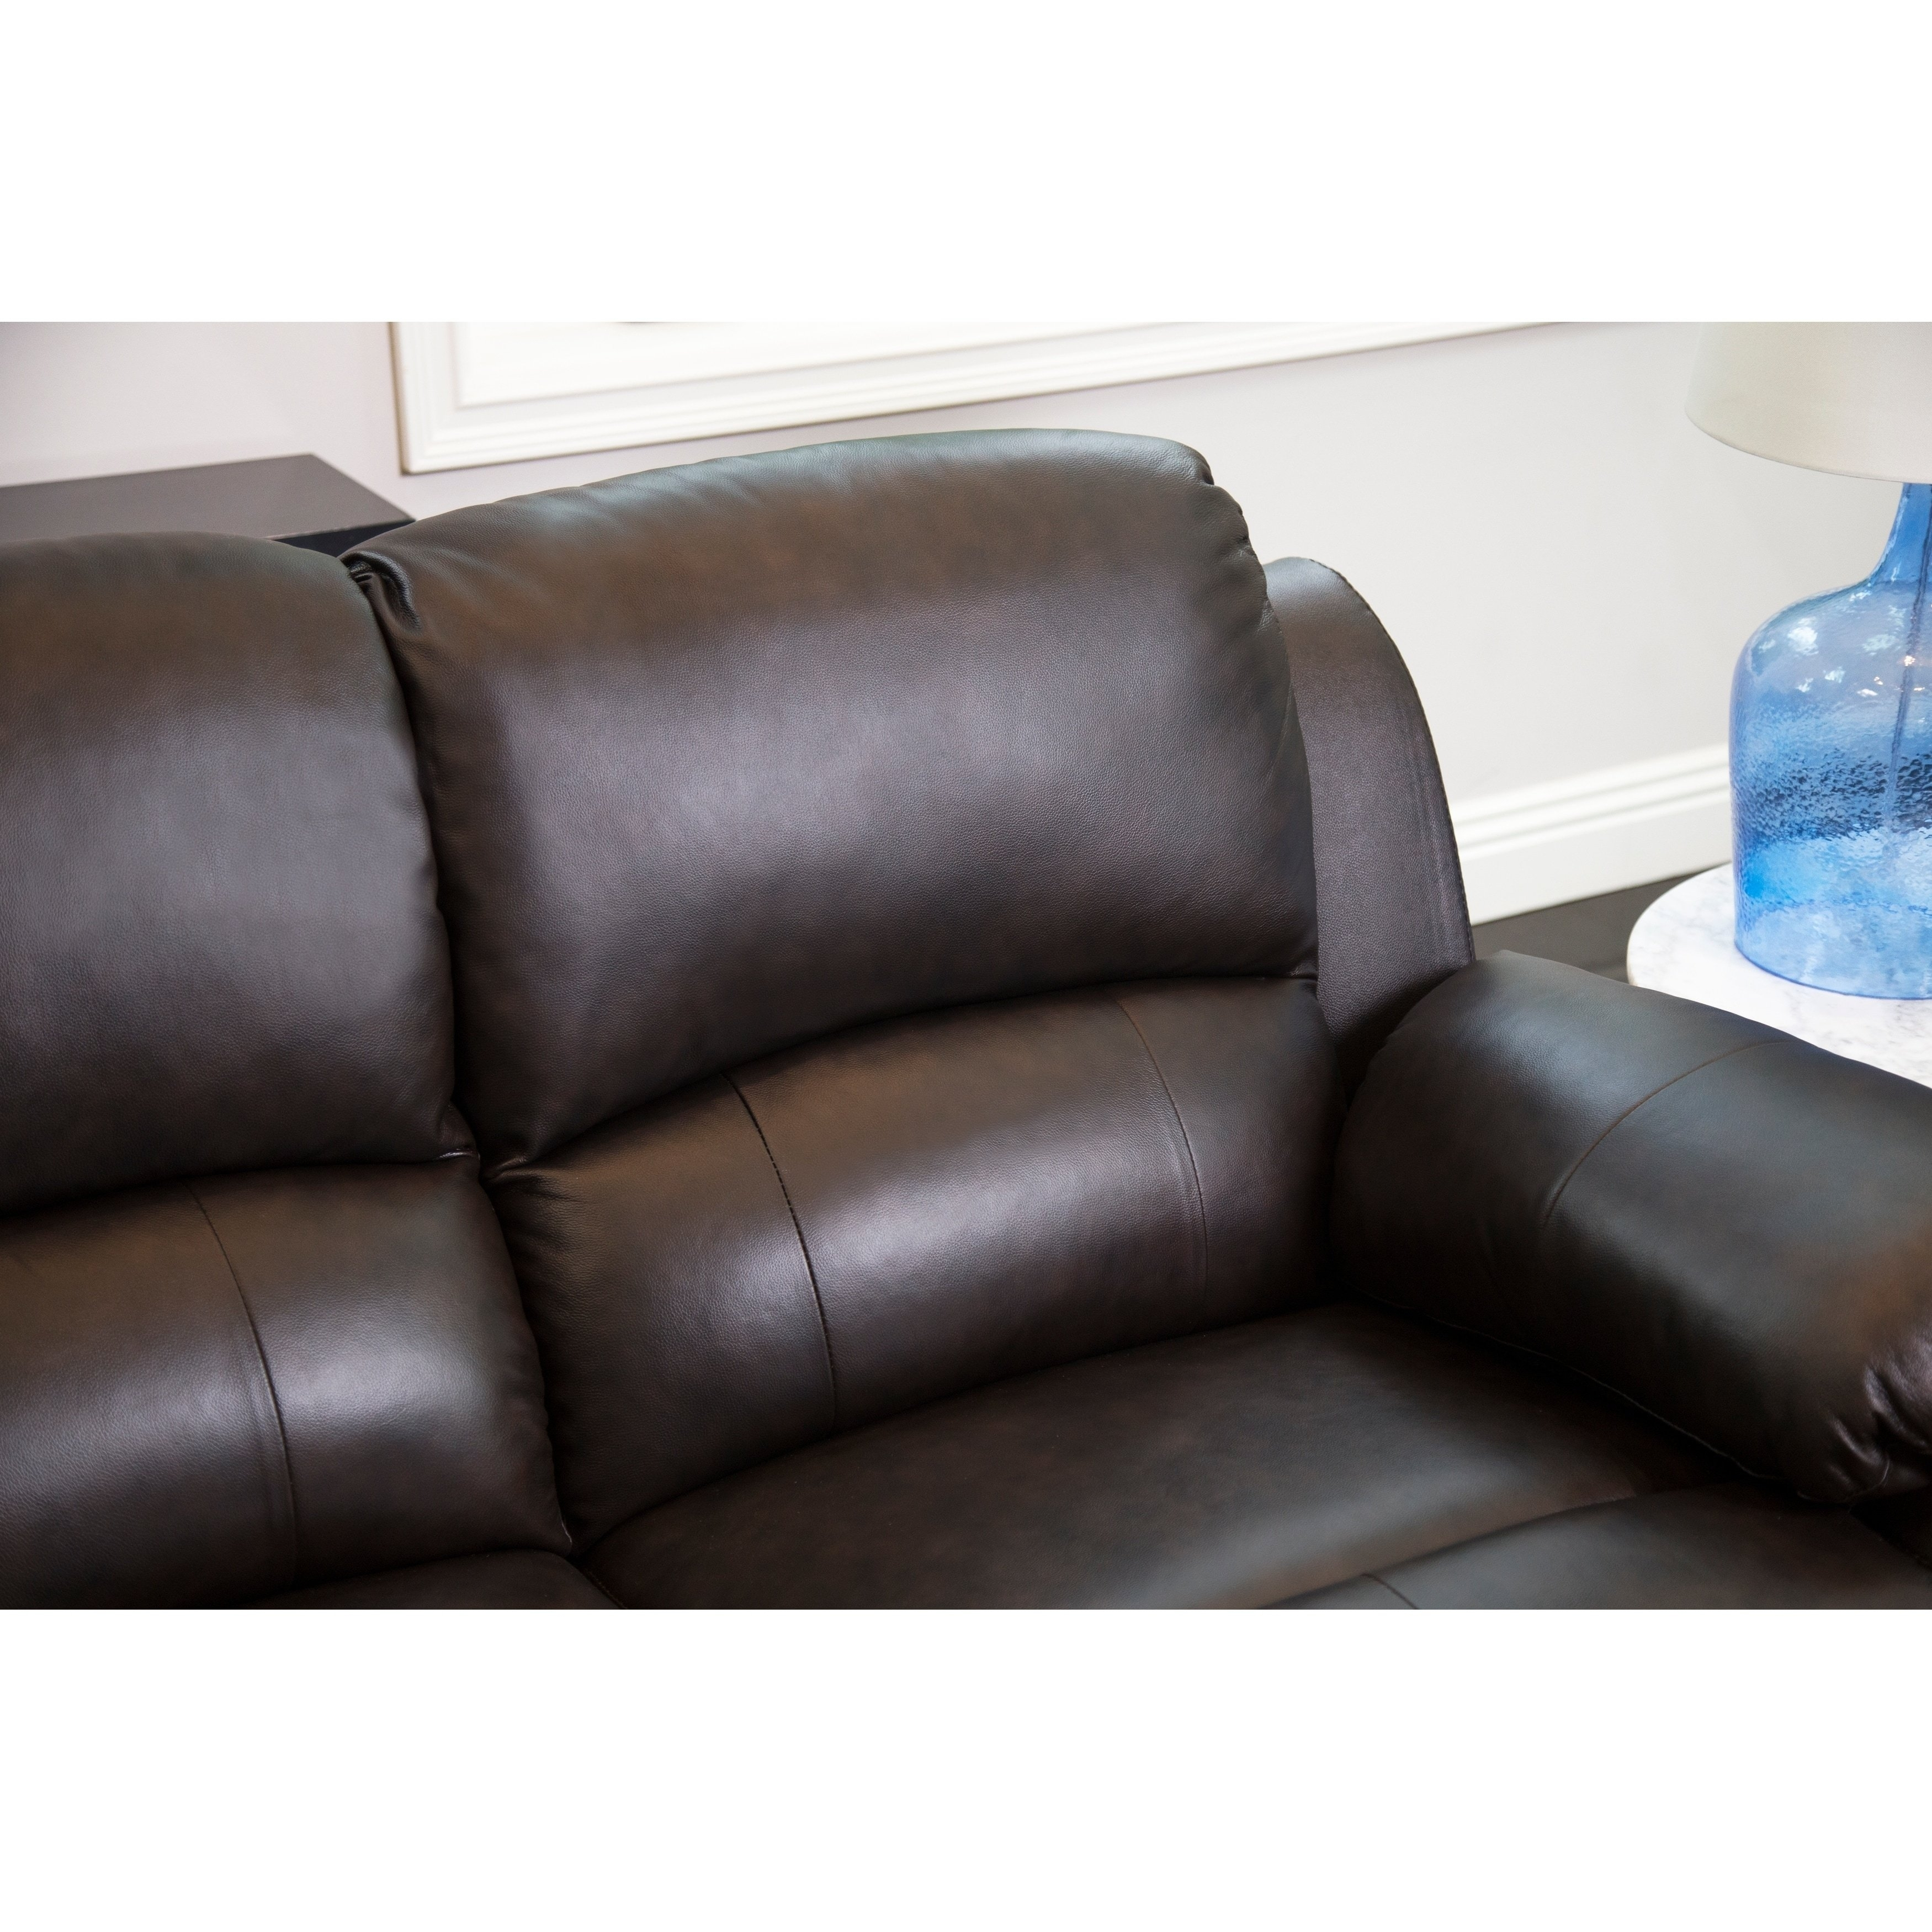 Vast 25 Genuine Leather Reclining Sectional Ideal throughout Burton Leather 3 Piece Sectionals With Ottoman (Image 27 of 30)